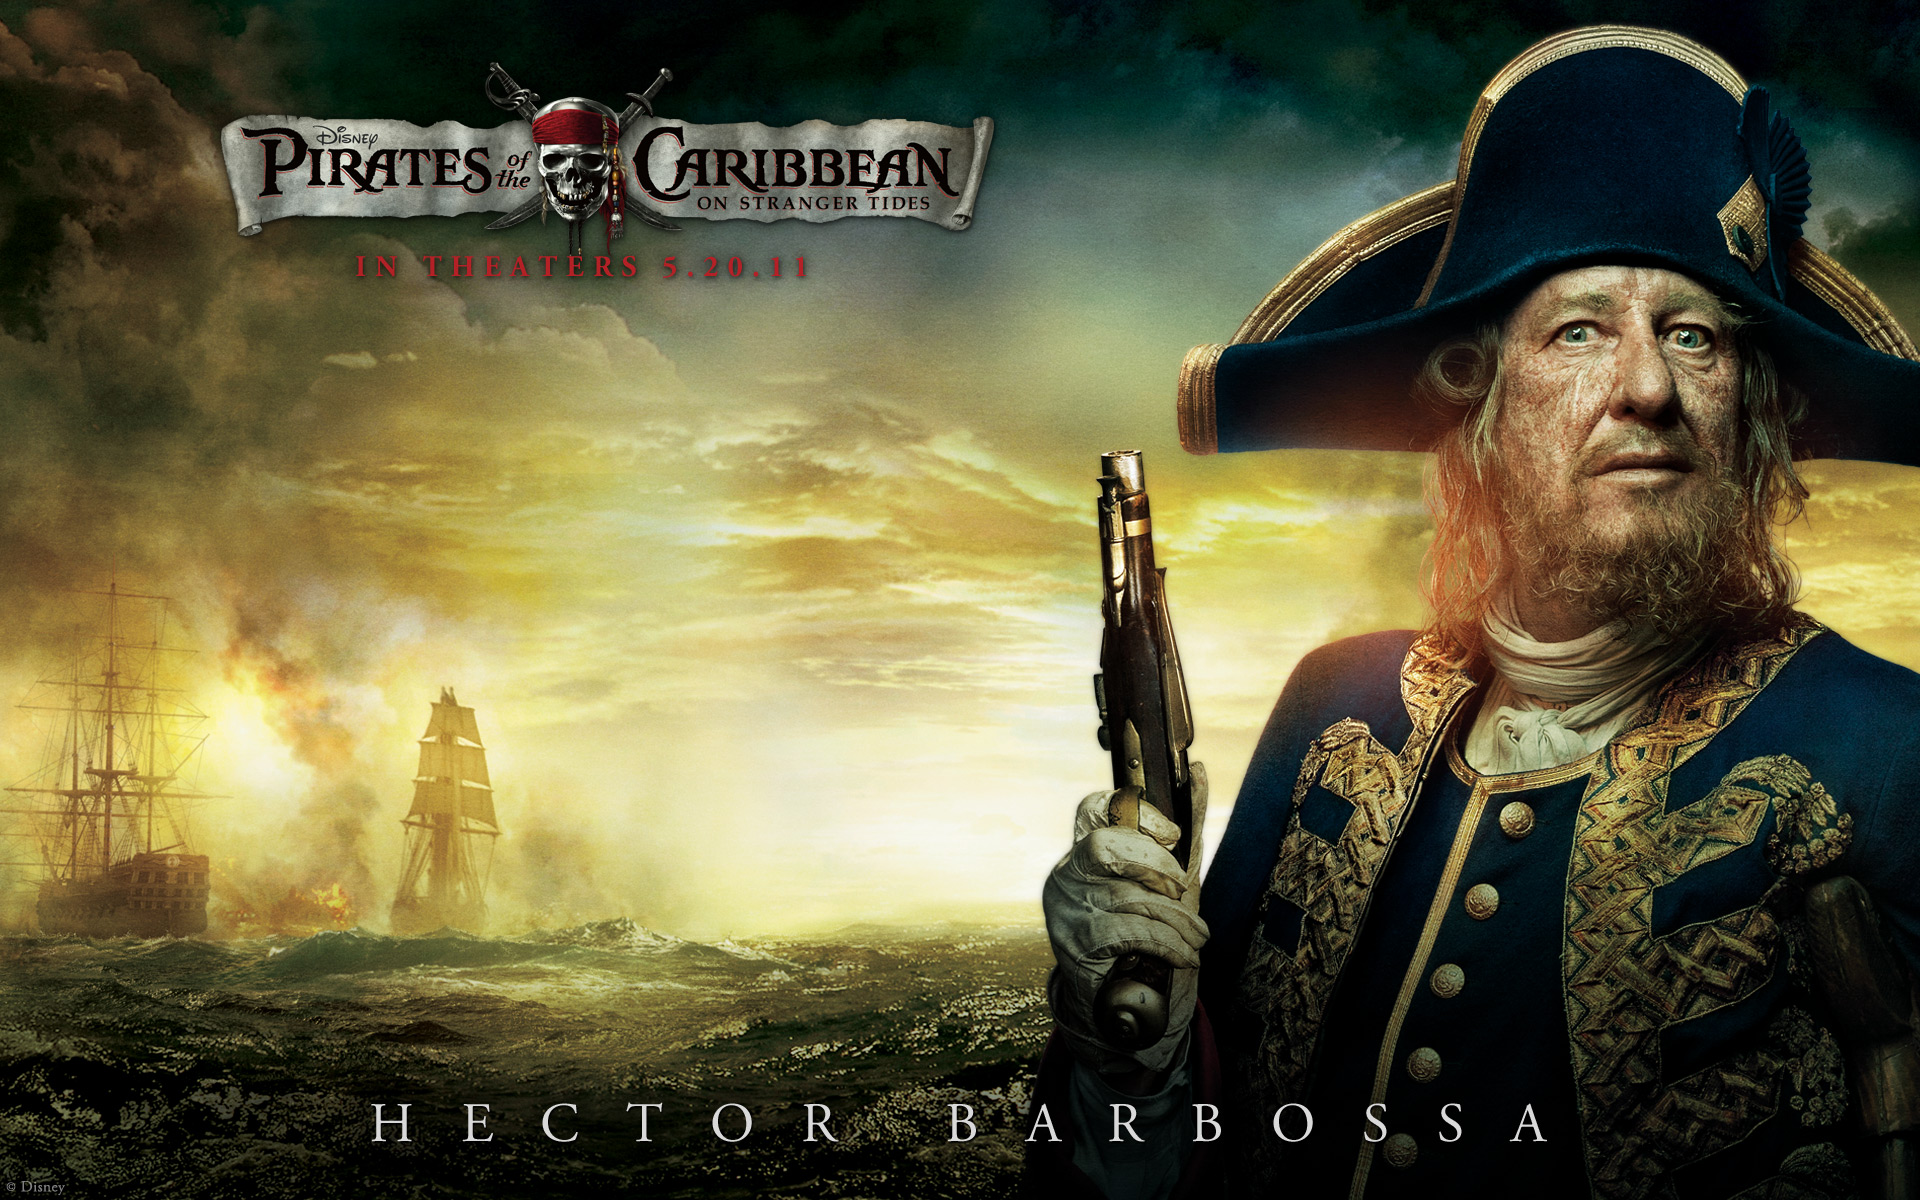 barbossa from pirates of the caribbean desktop wallpaper